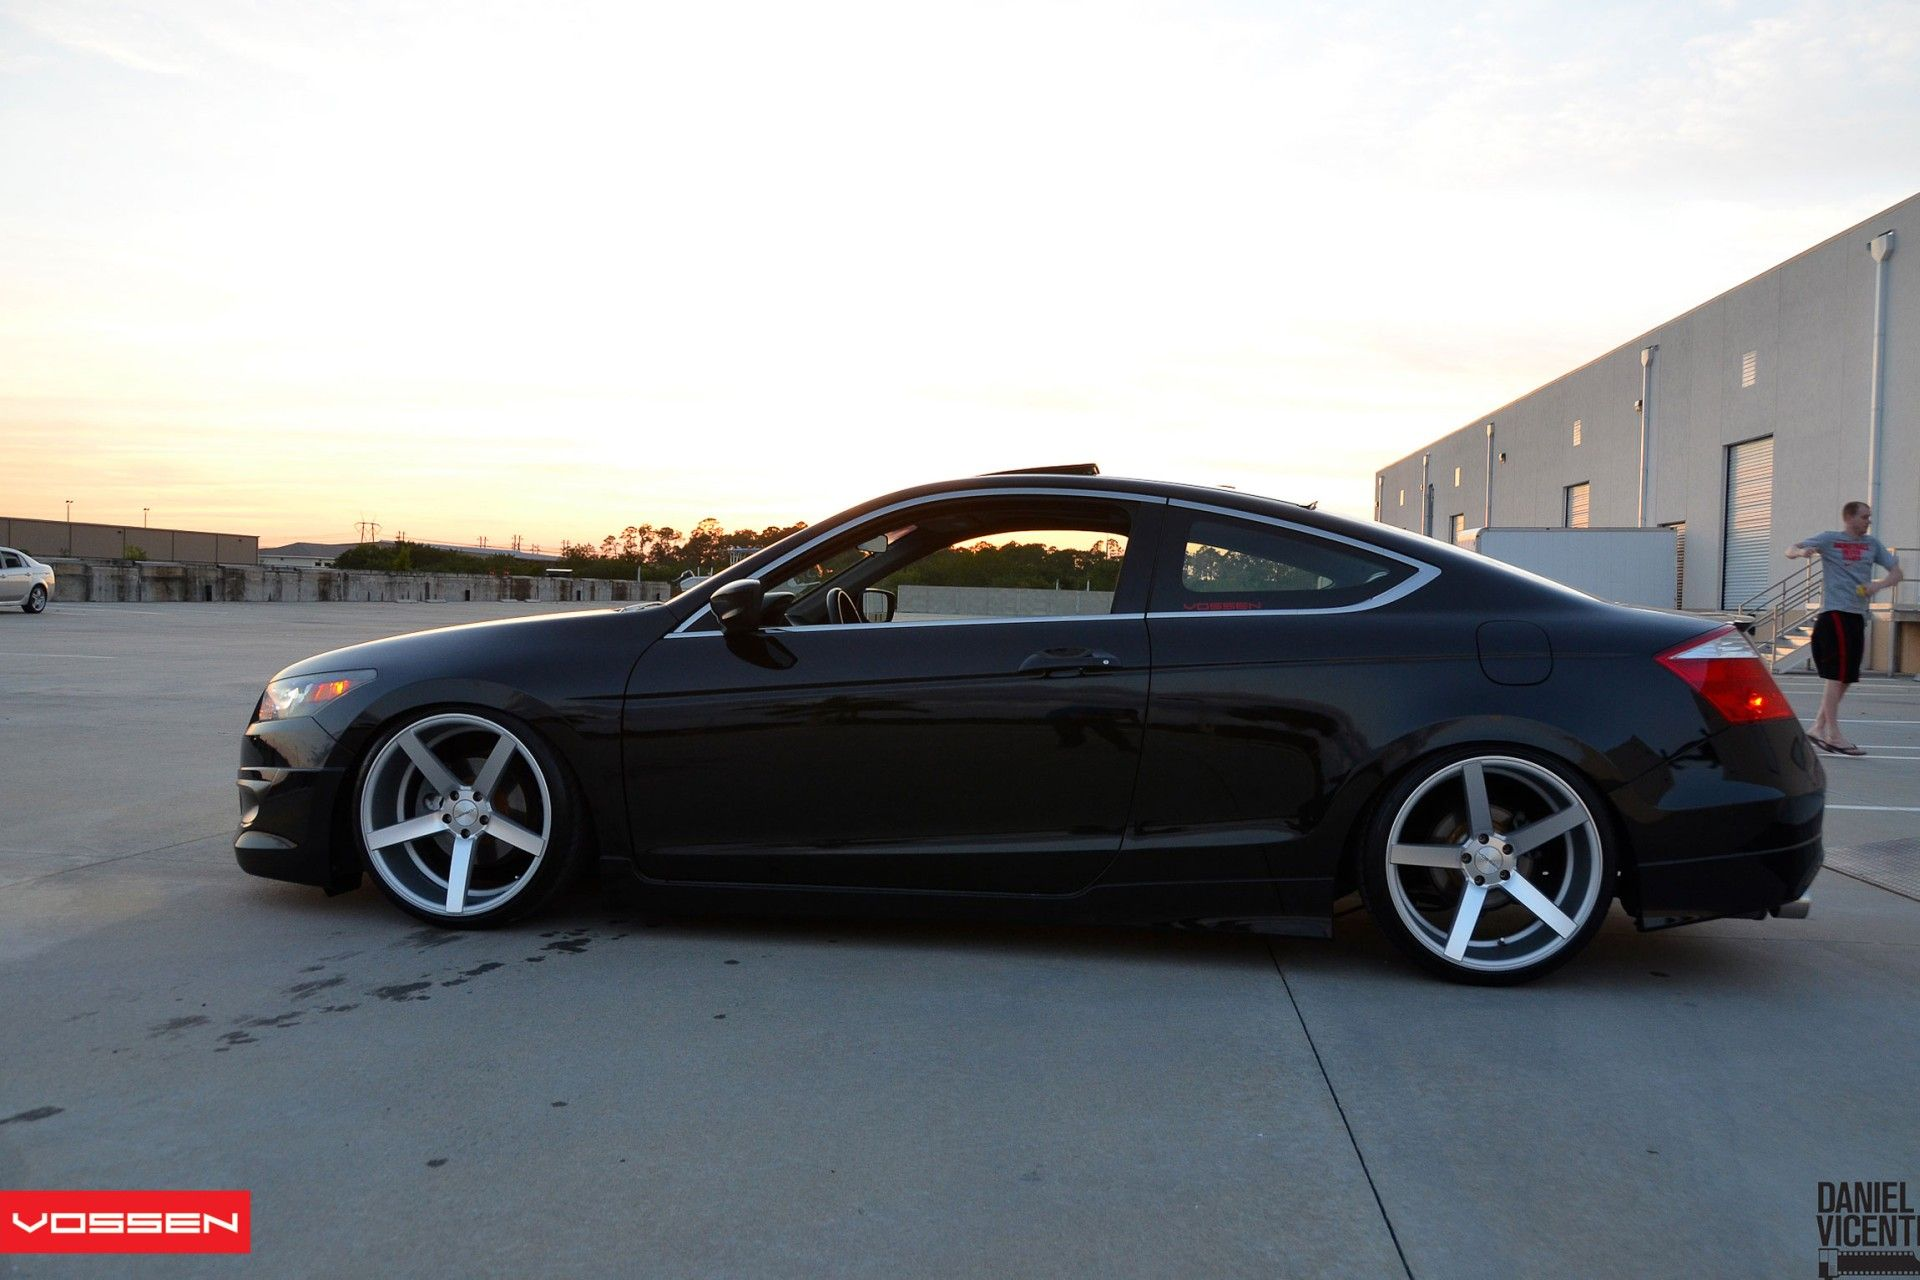 Honda Accord Coupe By Vossen Honda Accord Coupe Accord Coupe Honda Coupe